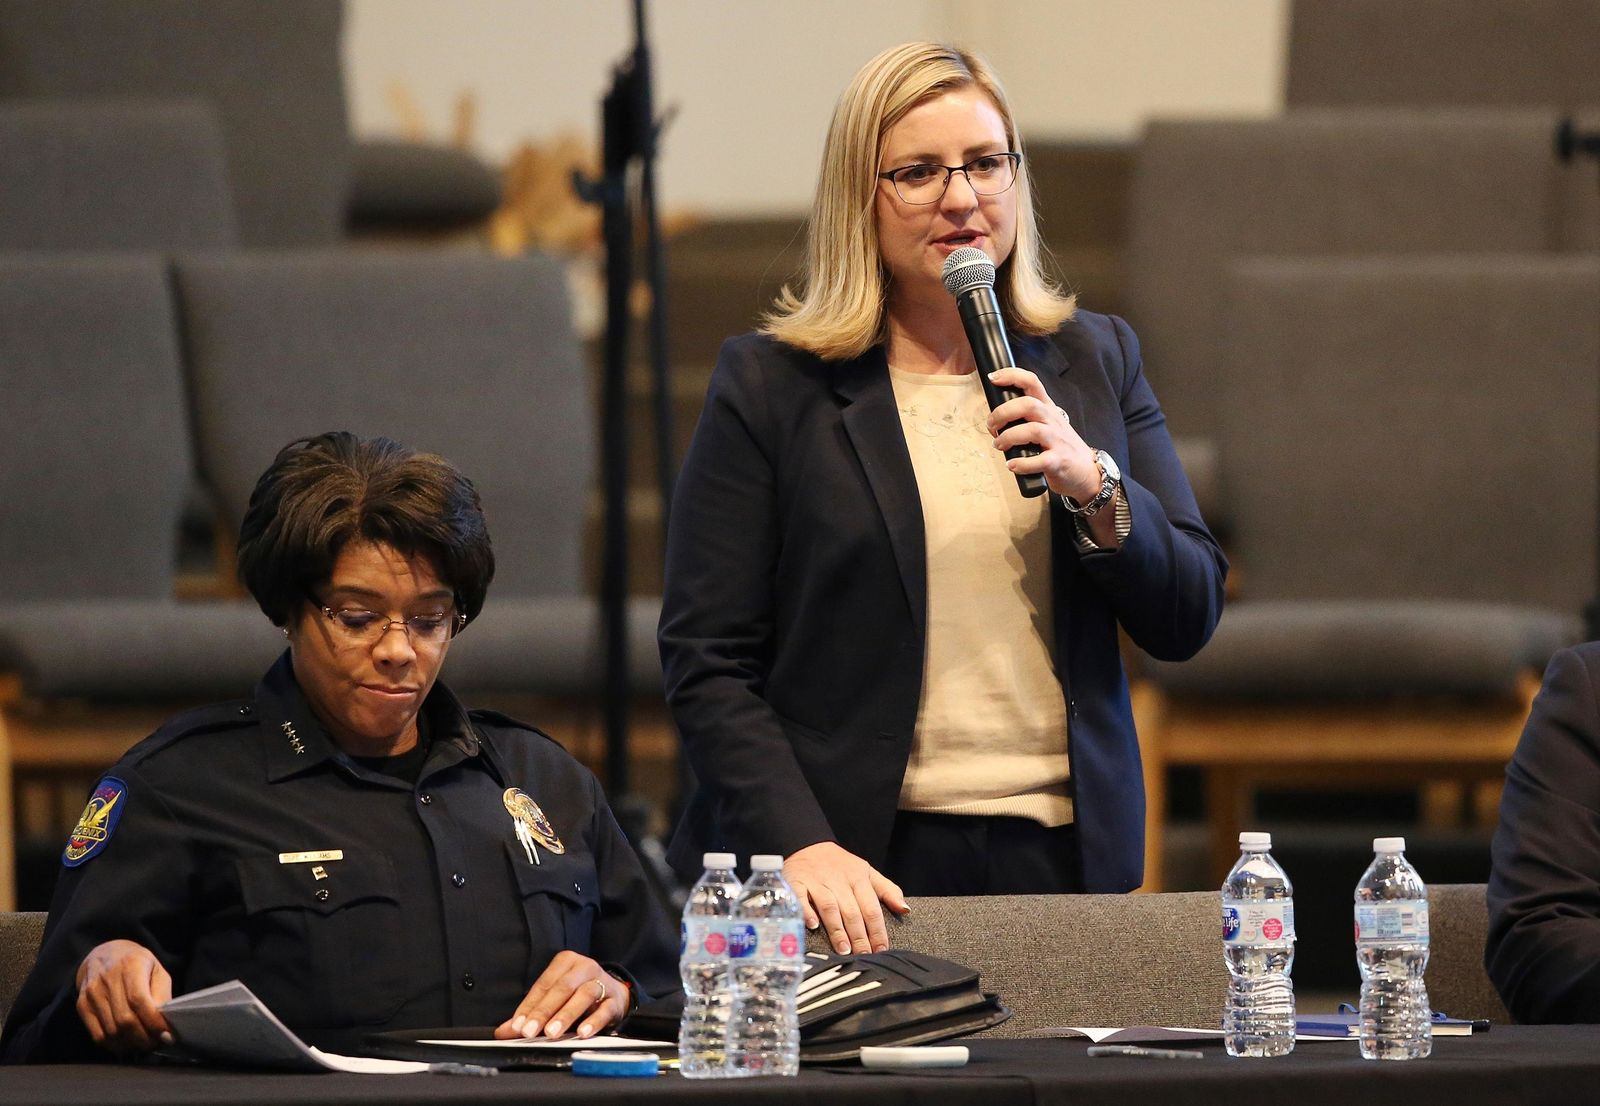 Phoenix Mayor Kate Gallego, right, addresses the audience as Phoenix Police Chief Jeri Williams, left, goes through notes at a community meeti